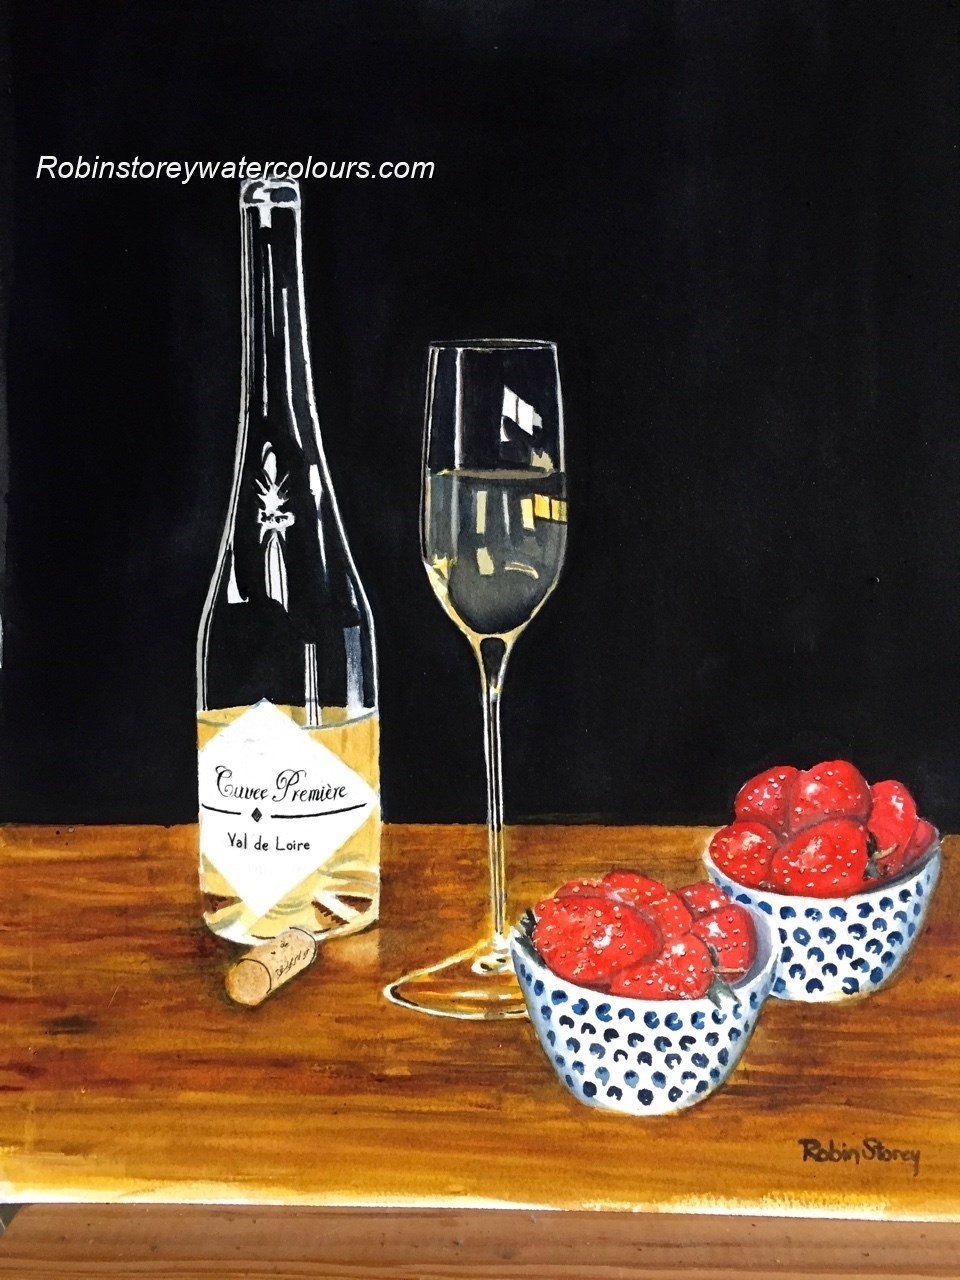 Strawberries and wine (1) ,original watercolour by Robin Storey